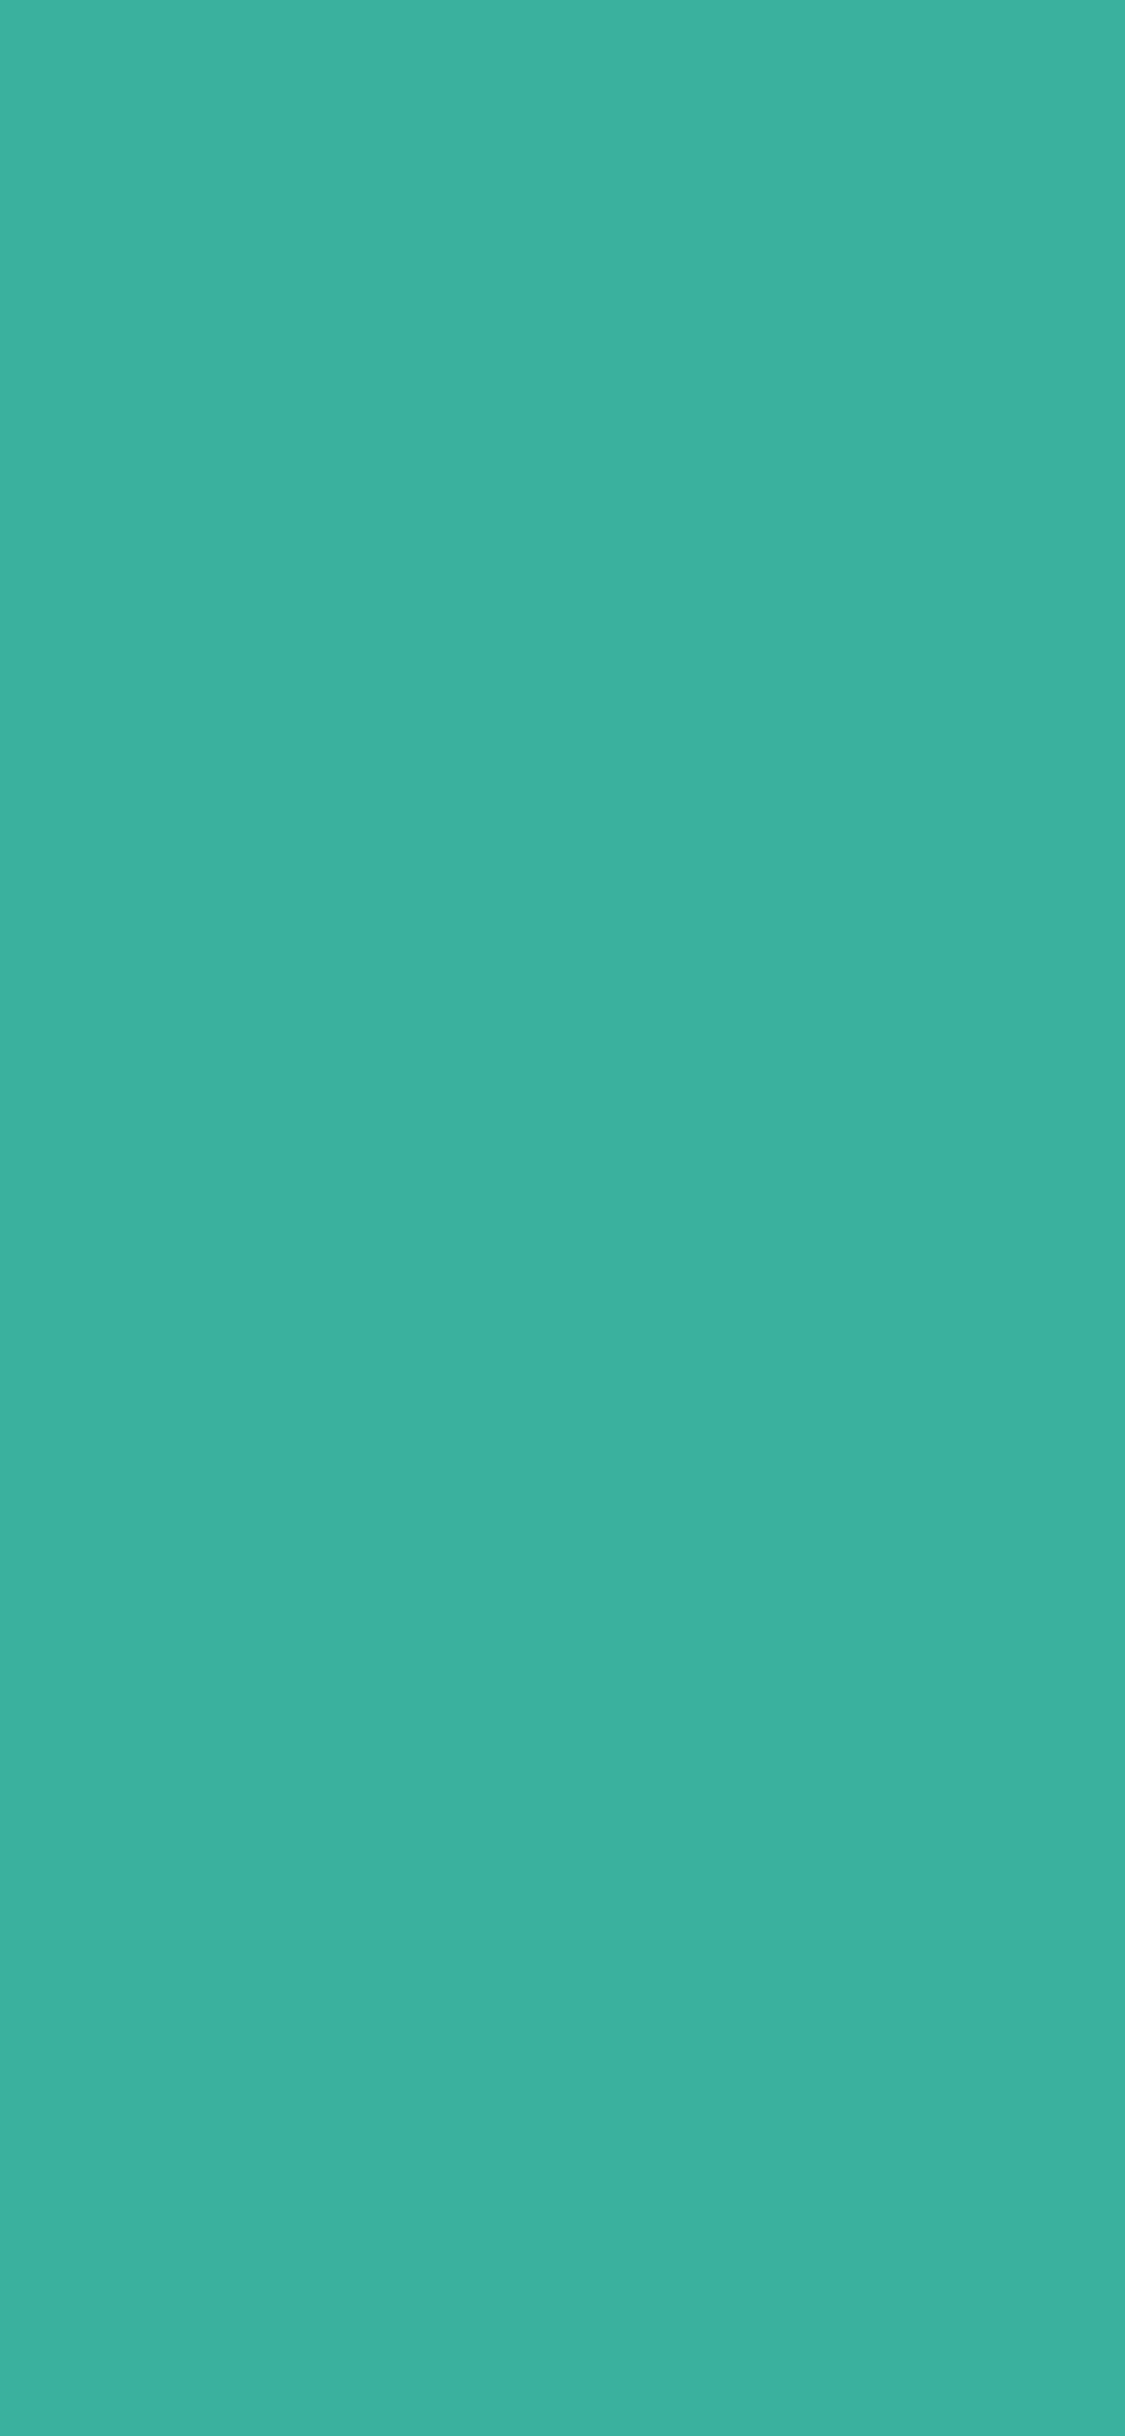 1125x2436 Keppel Solid Color Background